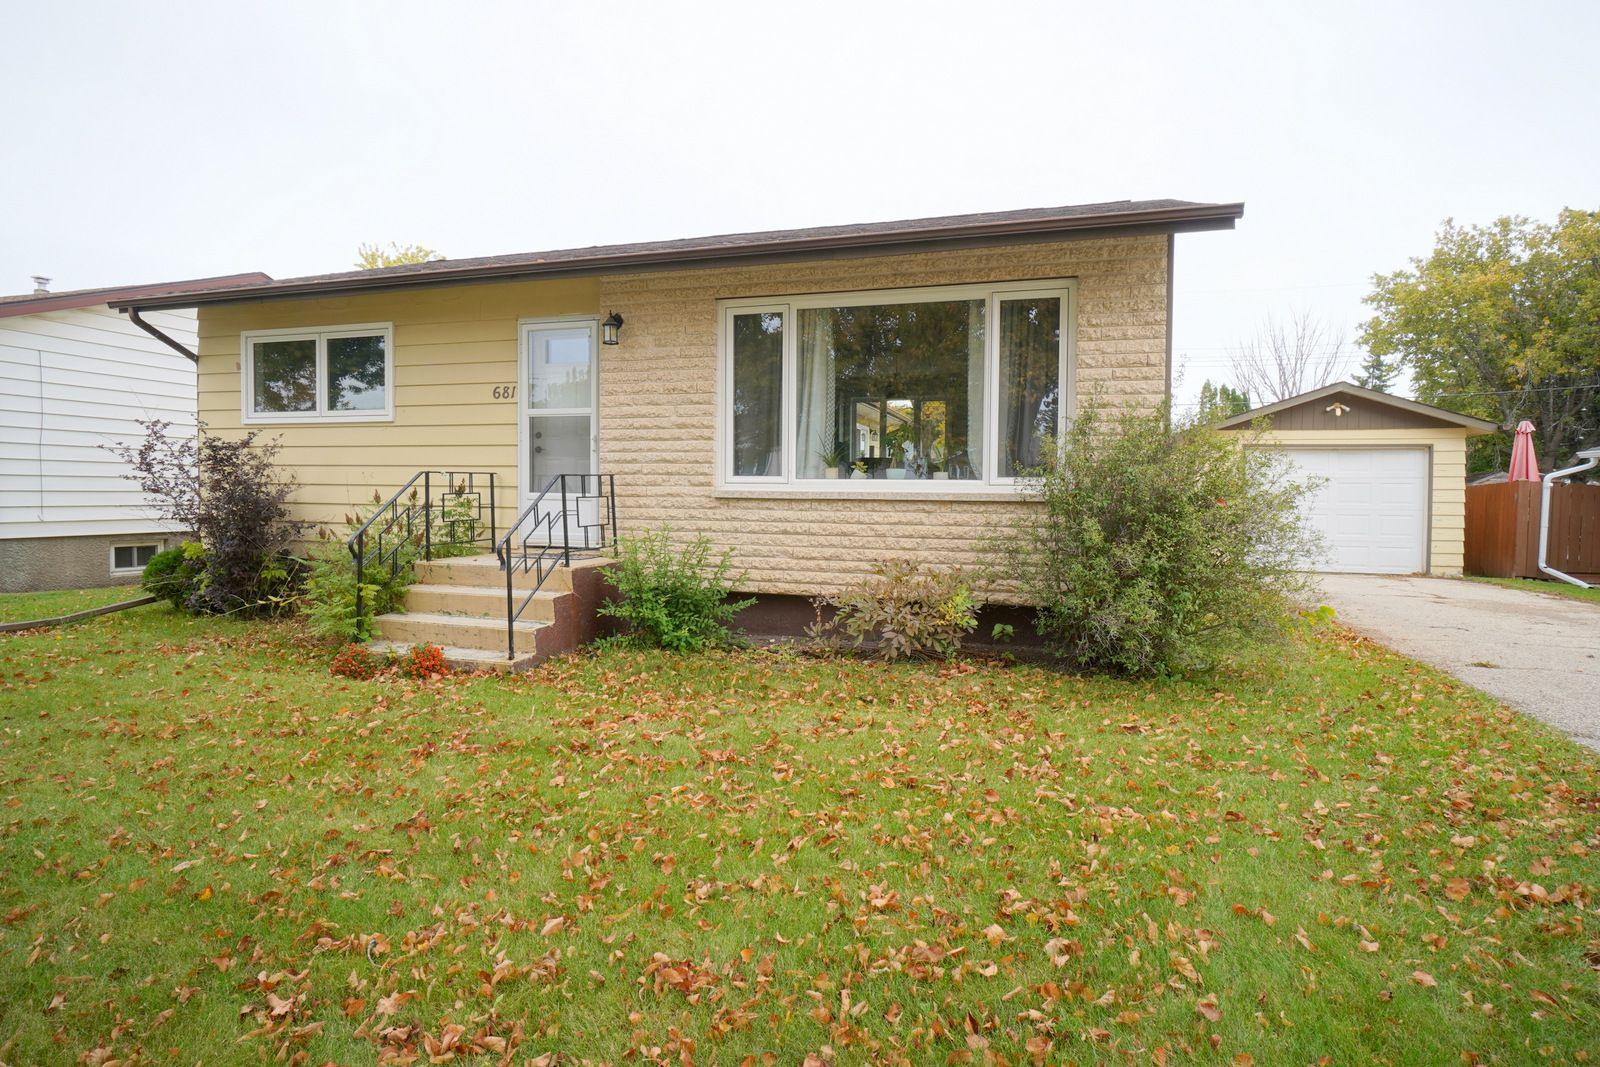 Main Photo: 681 Maplewood Crescent in Portage la Prairie: House for sale : MLS®# 202122121